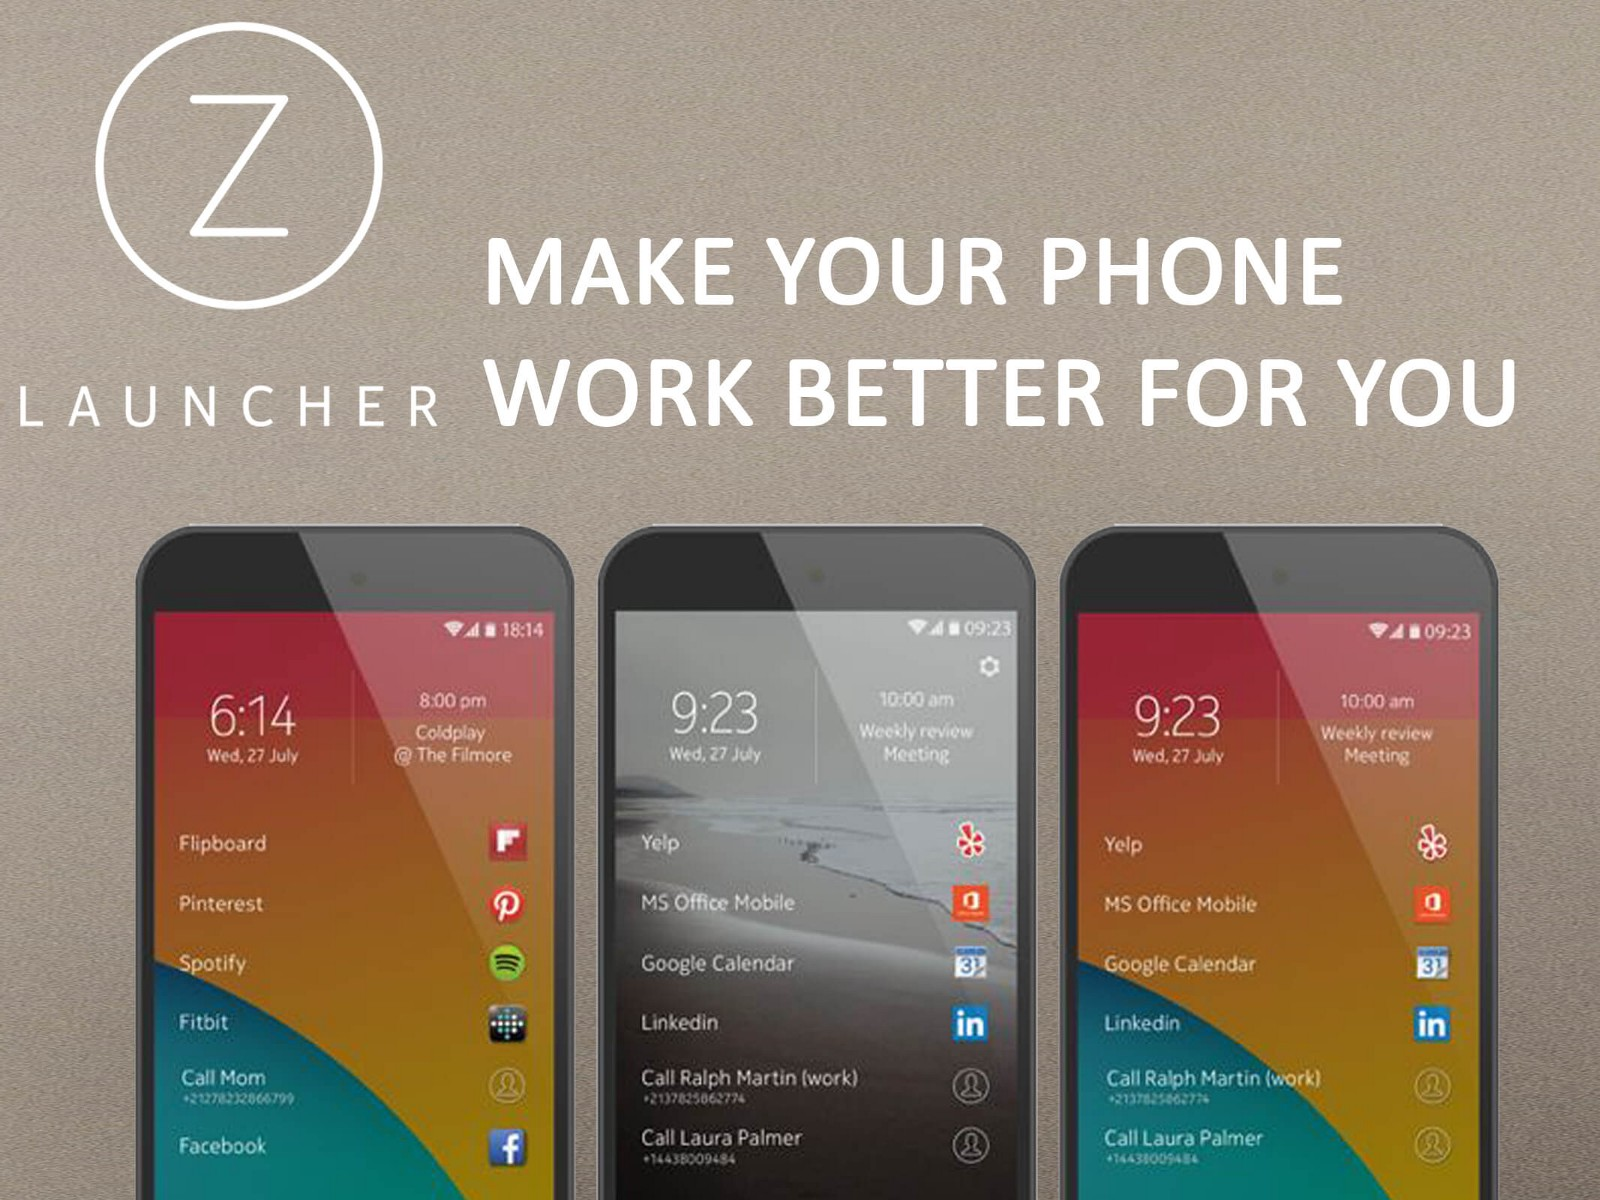 Nokia Releases The Z Launcher App For Android Devices